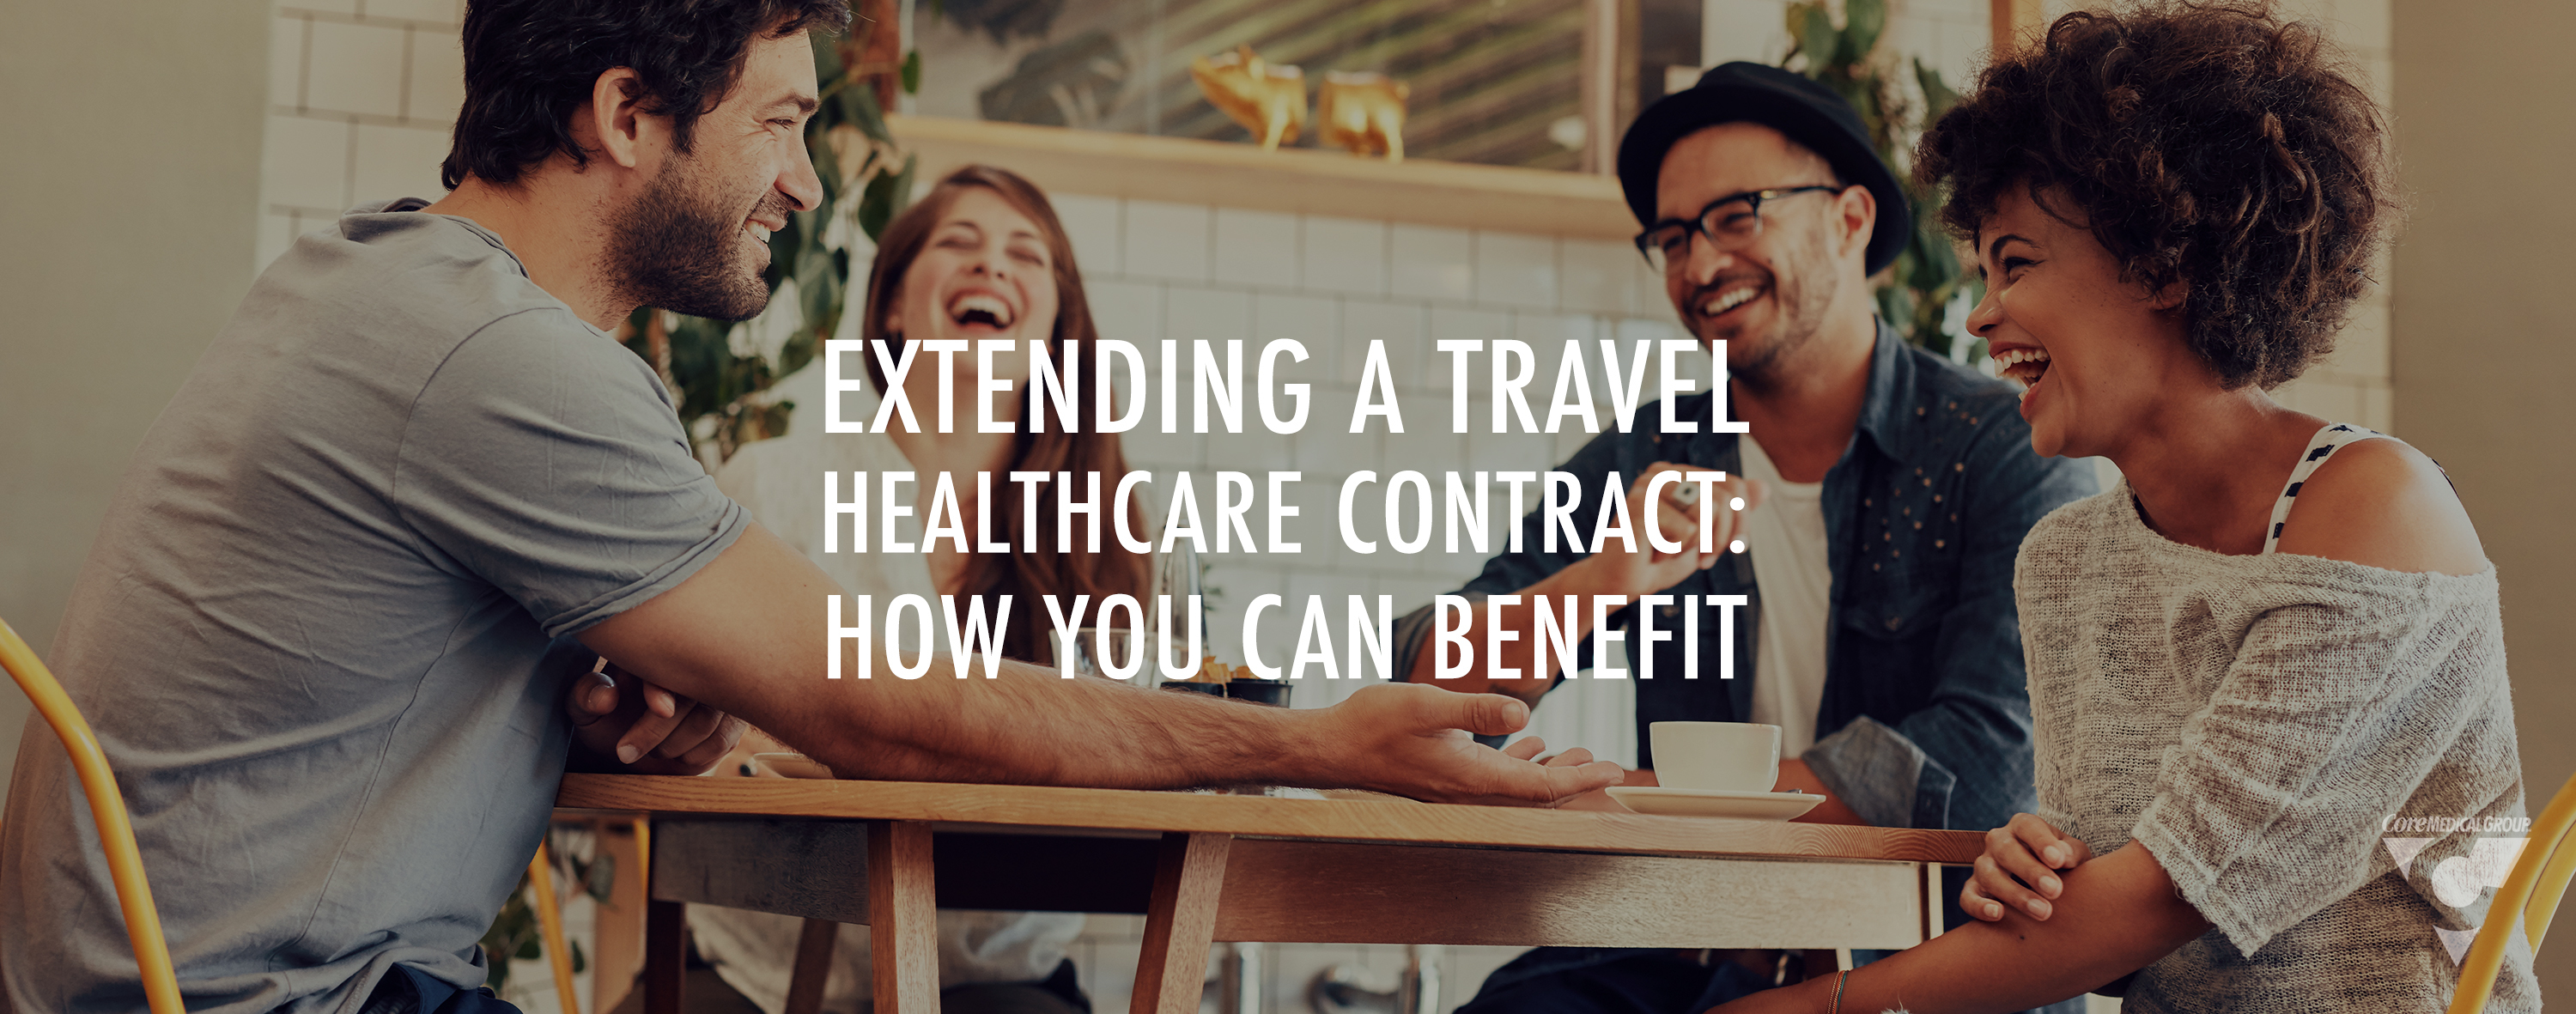 CMG_Blog_Featuredimages_Extending Travel Healthcare Contract_R1_Blog